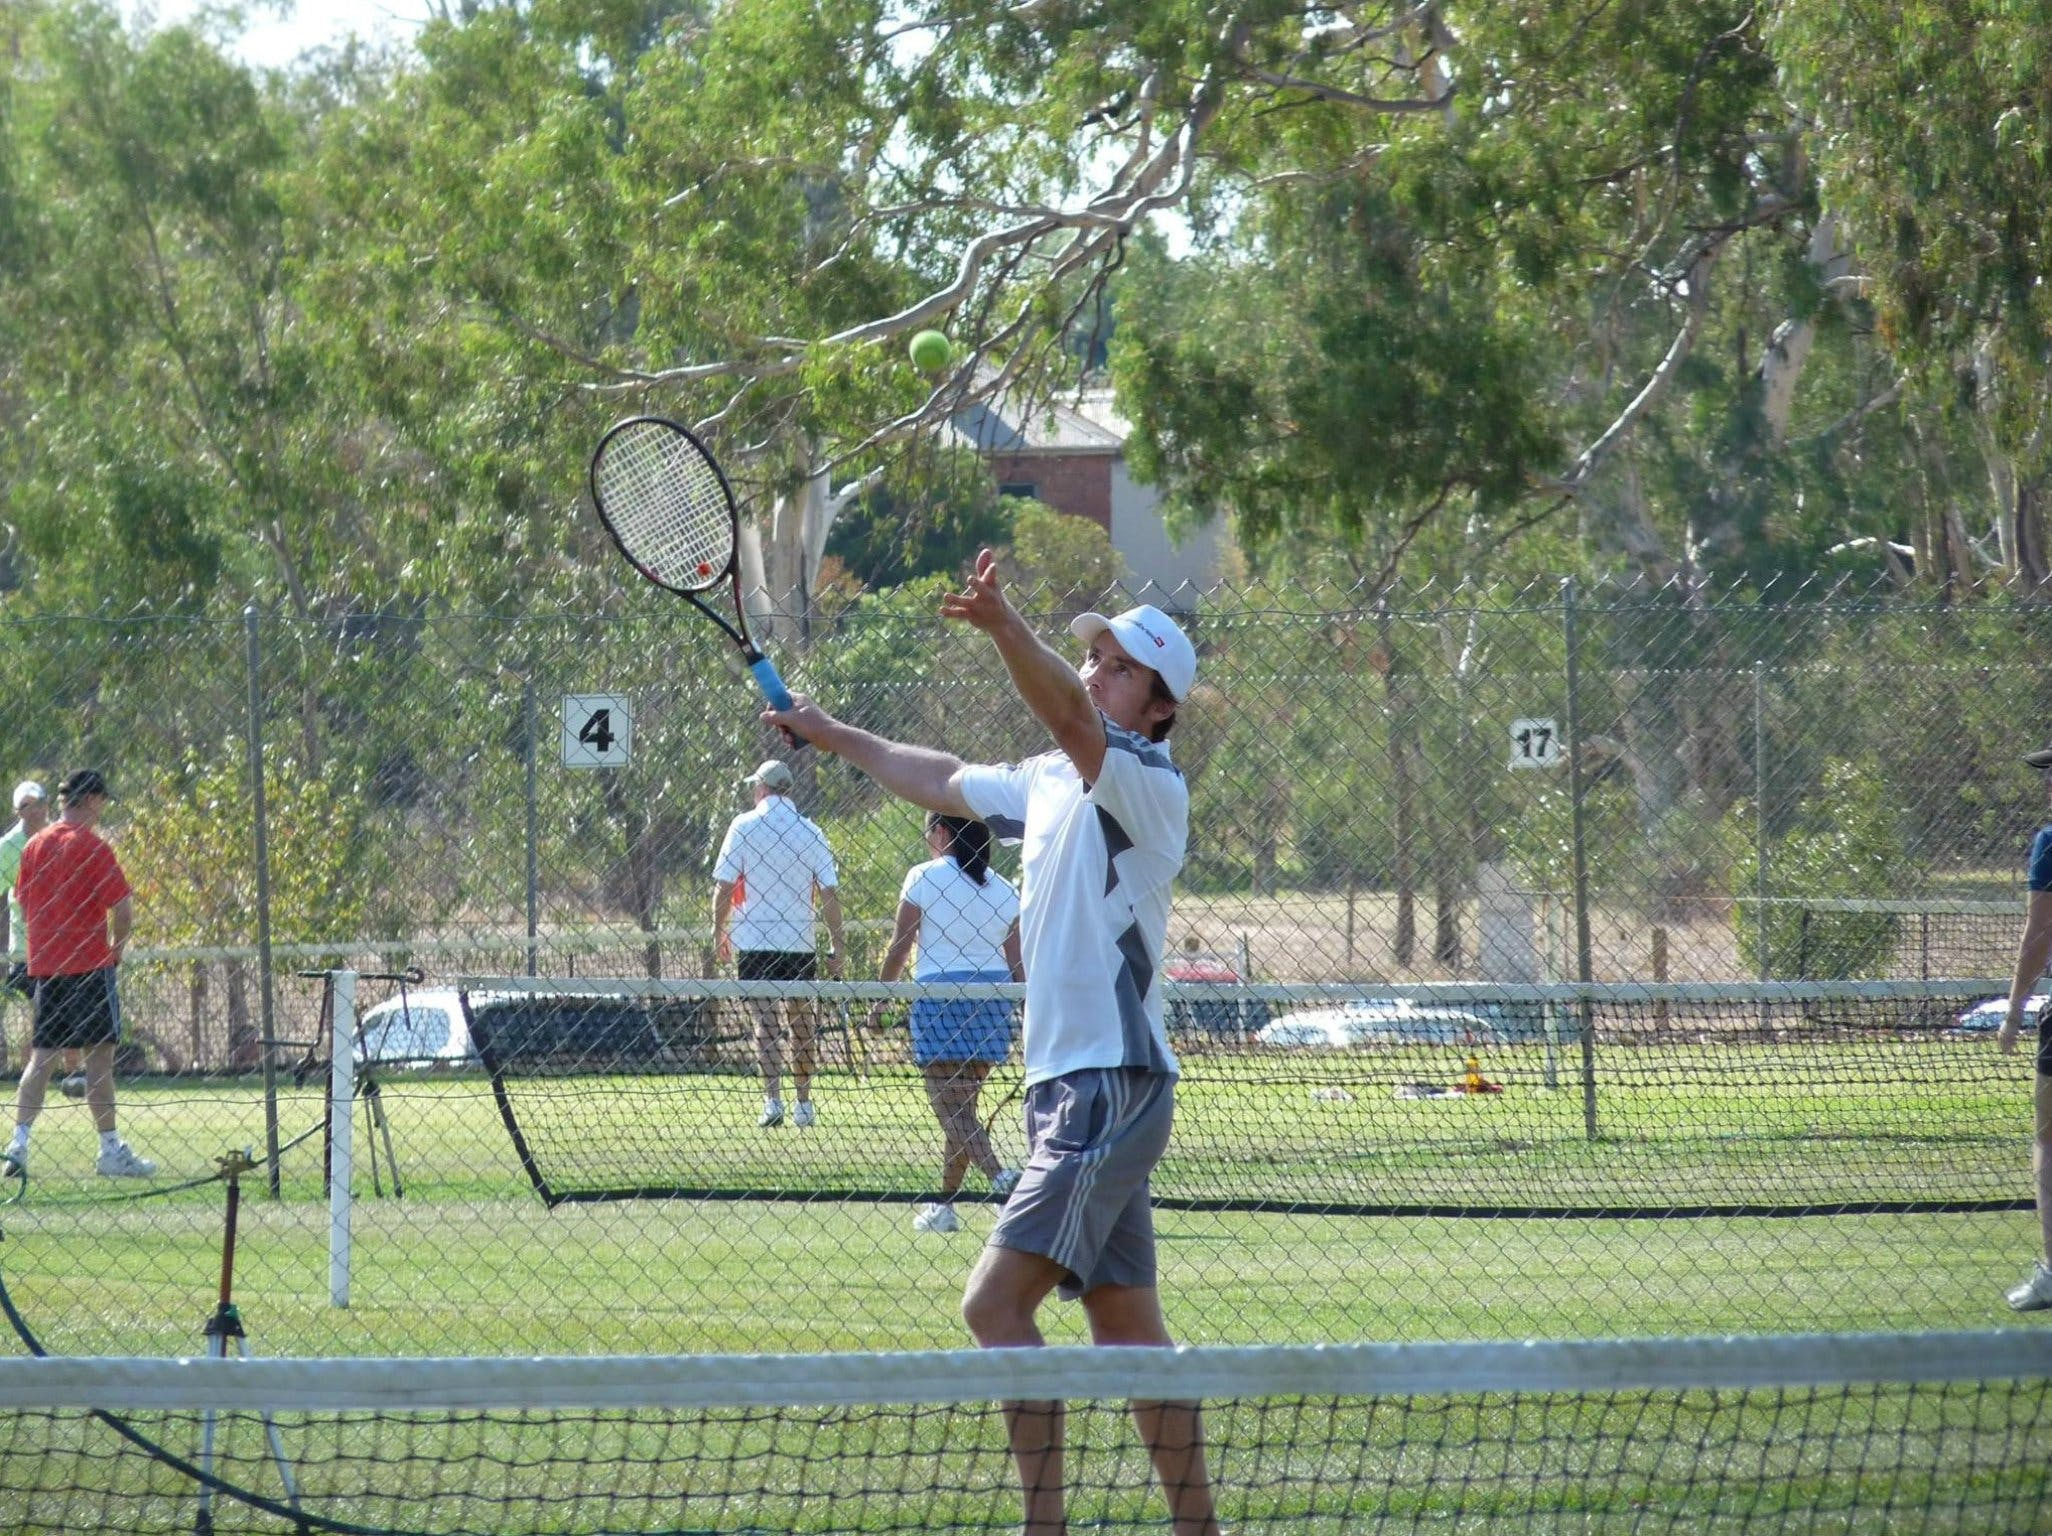 Corowa Easter Lawn Tennis Tournament - Lennox Head Accommodation